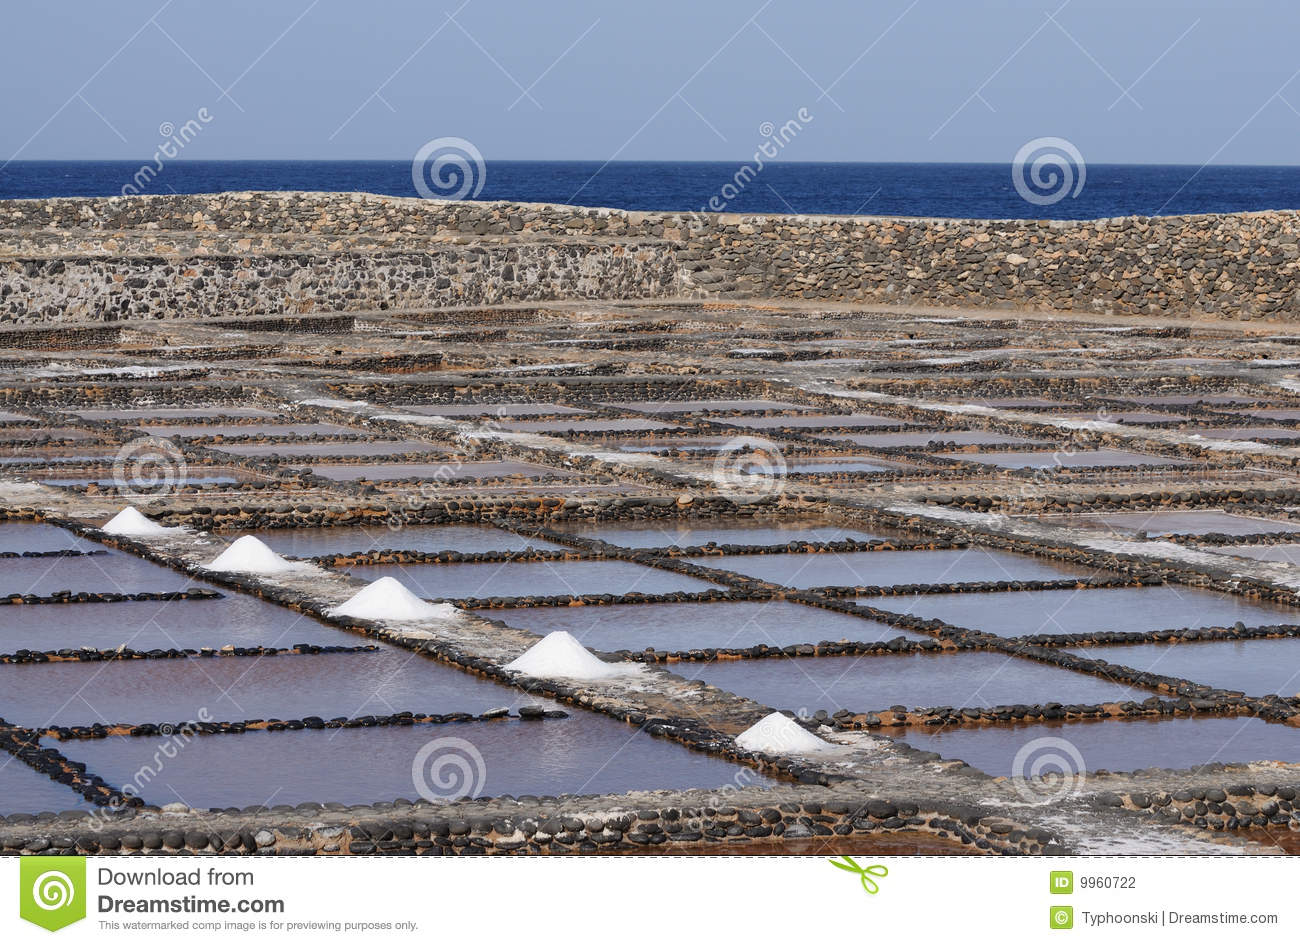 Salt evaporation ponds fuerteventura spain stock for Design of evaporation pond